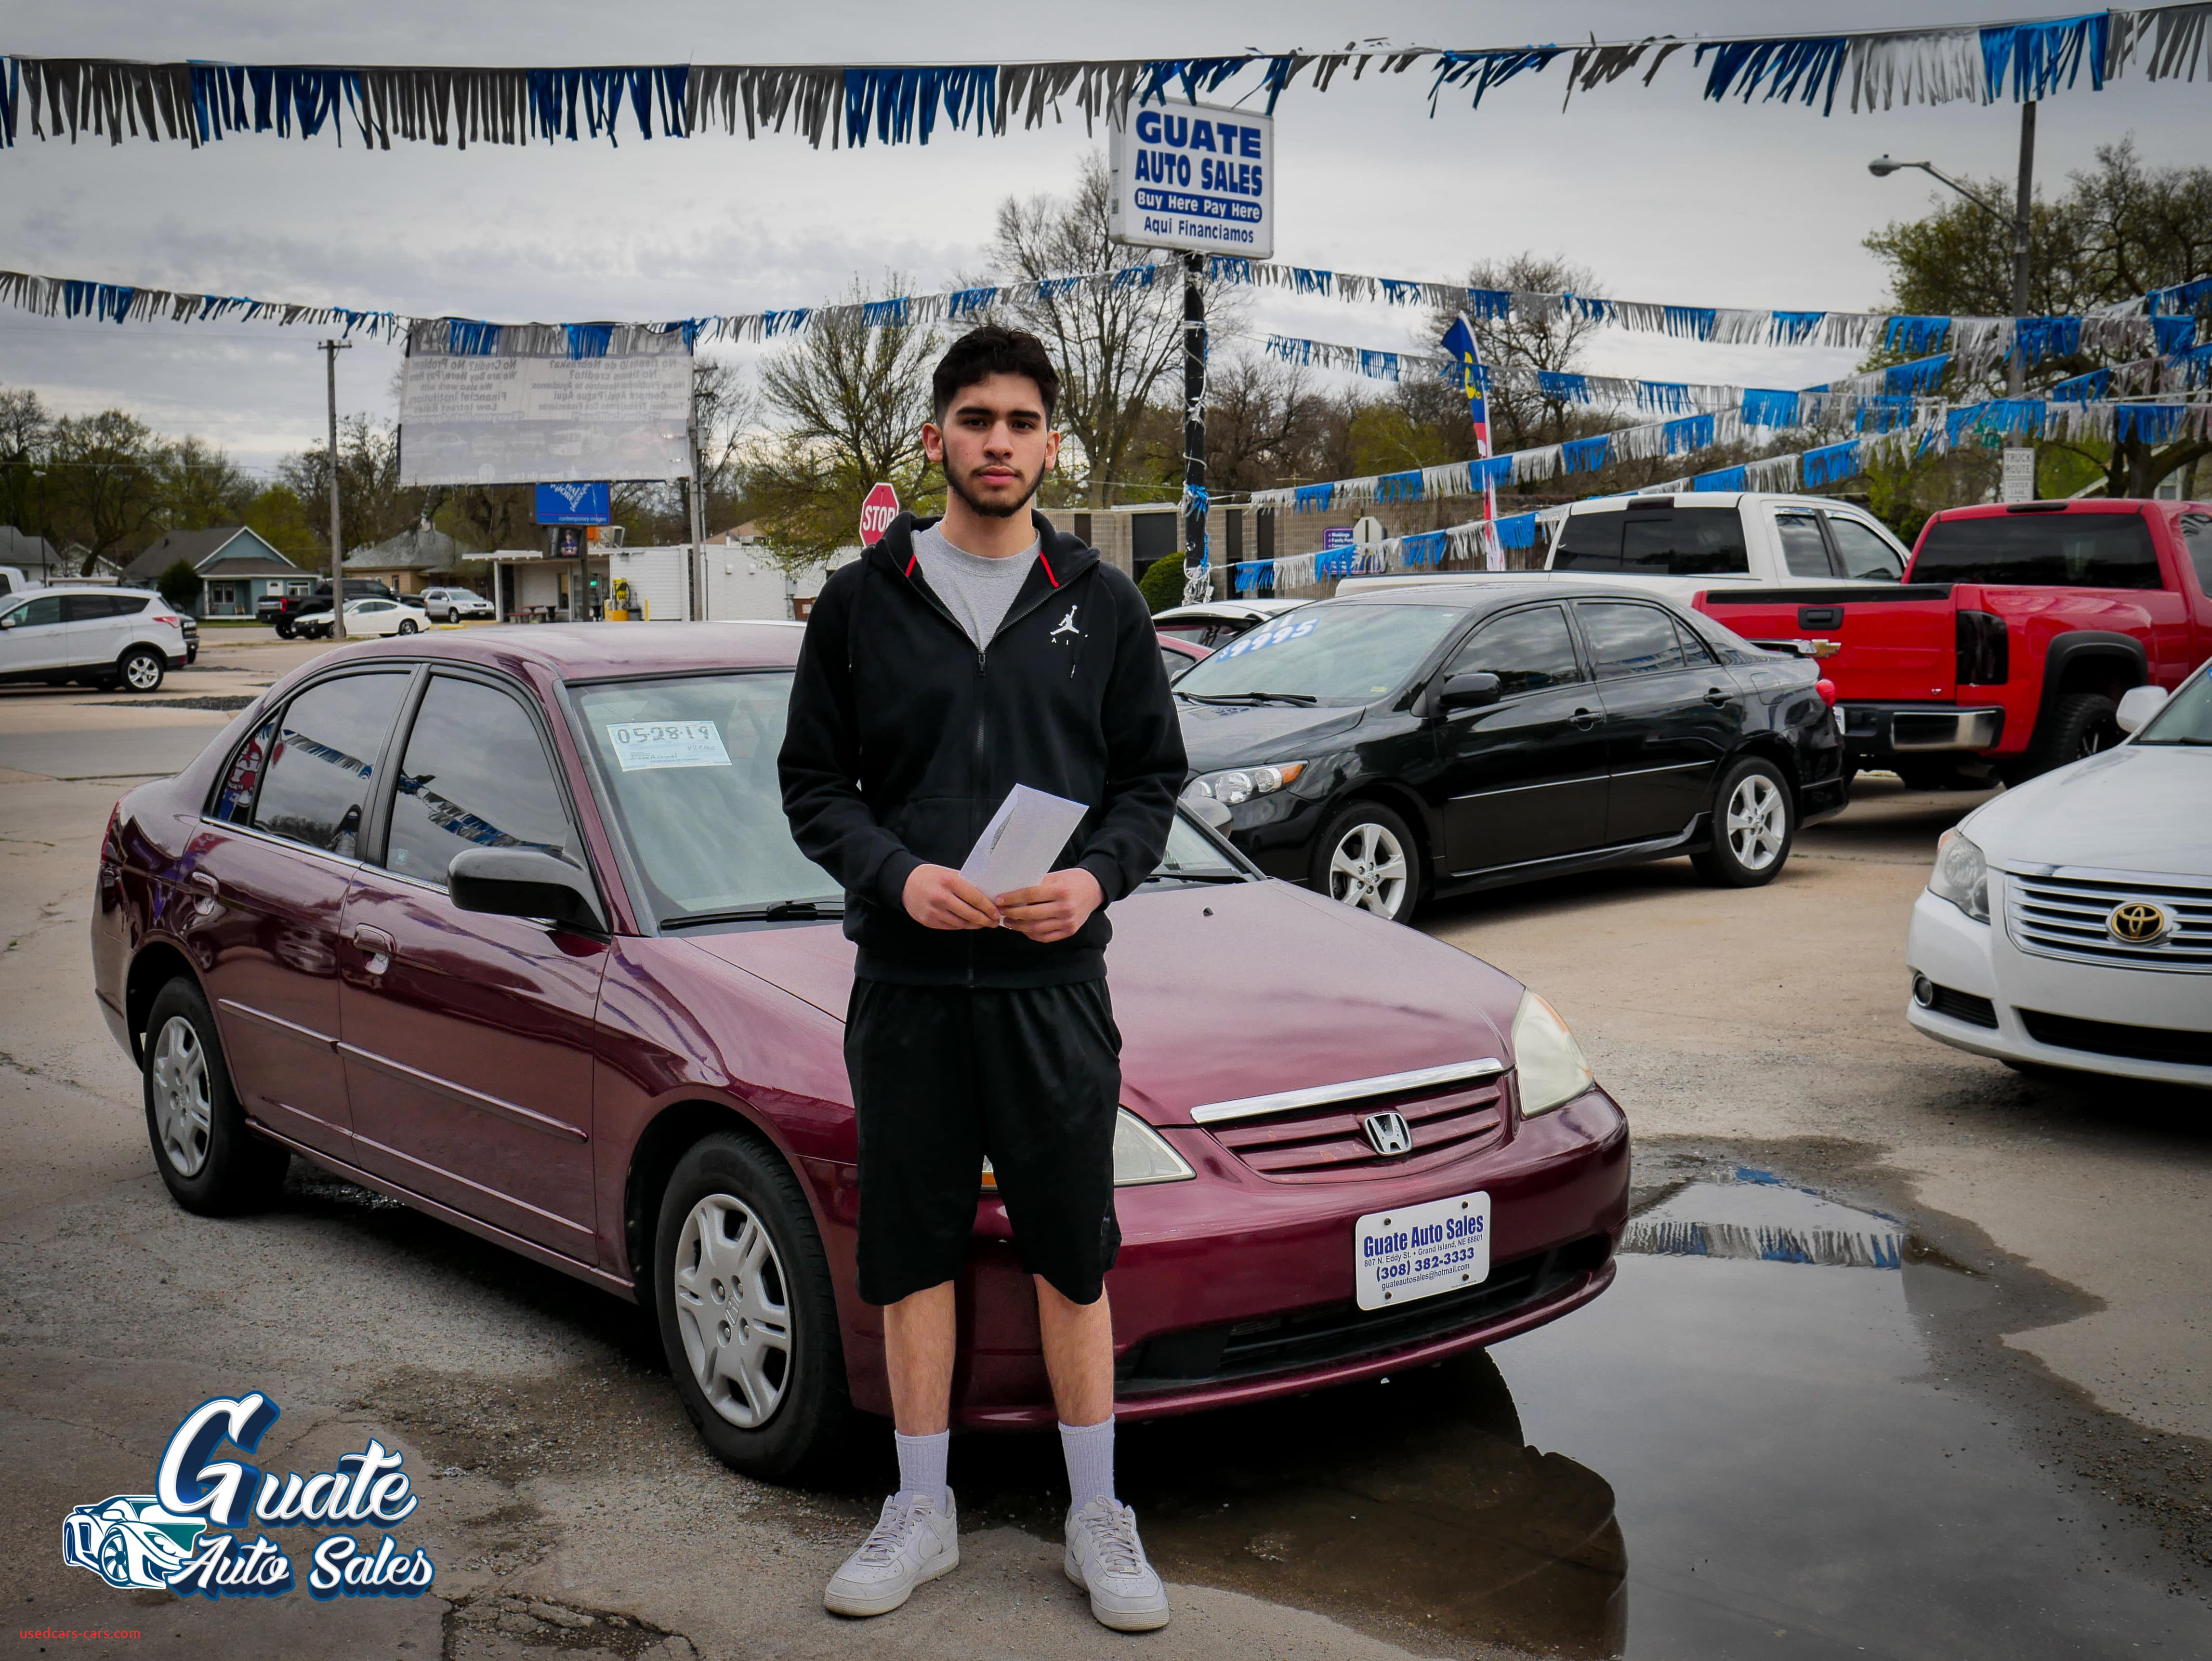 Used Car Dealerships No Credit Check Near Me New Guate Auto Sales Of Grand island Ne Has Clean and Reliable